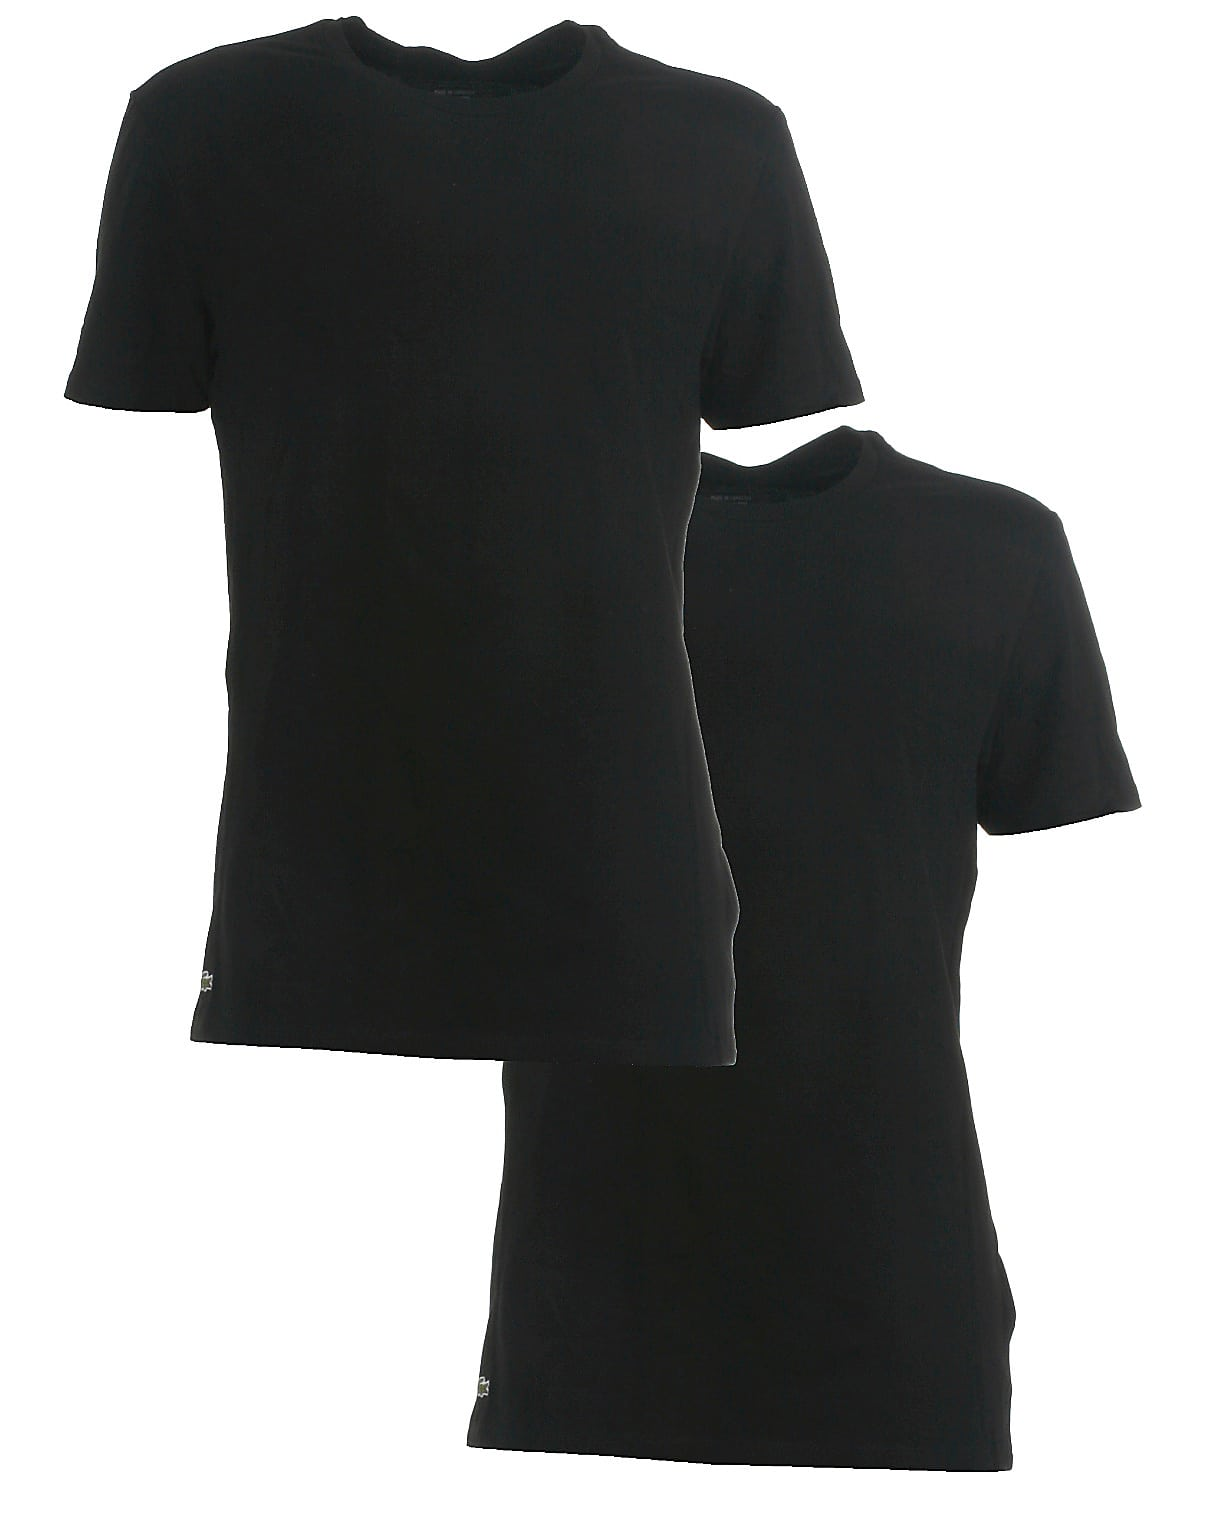 Image of Lacoste 2-pak t-shirt s/s, Casual, sort